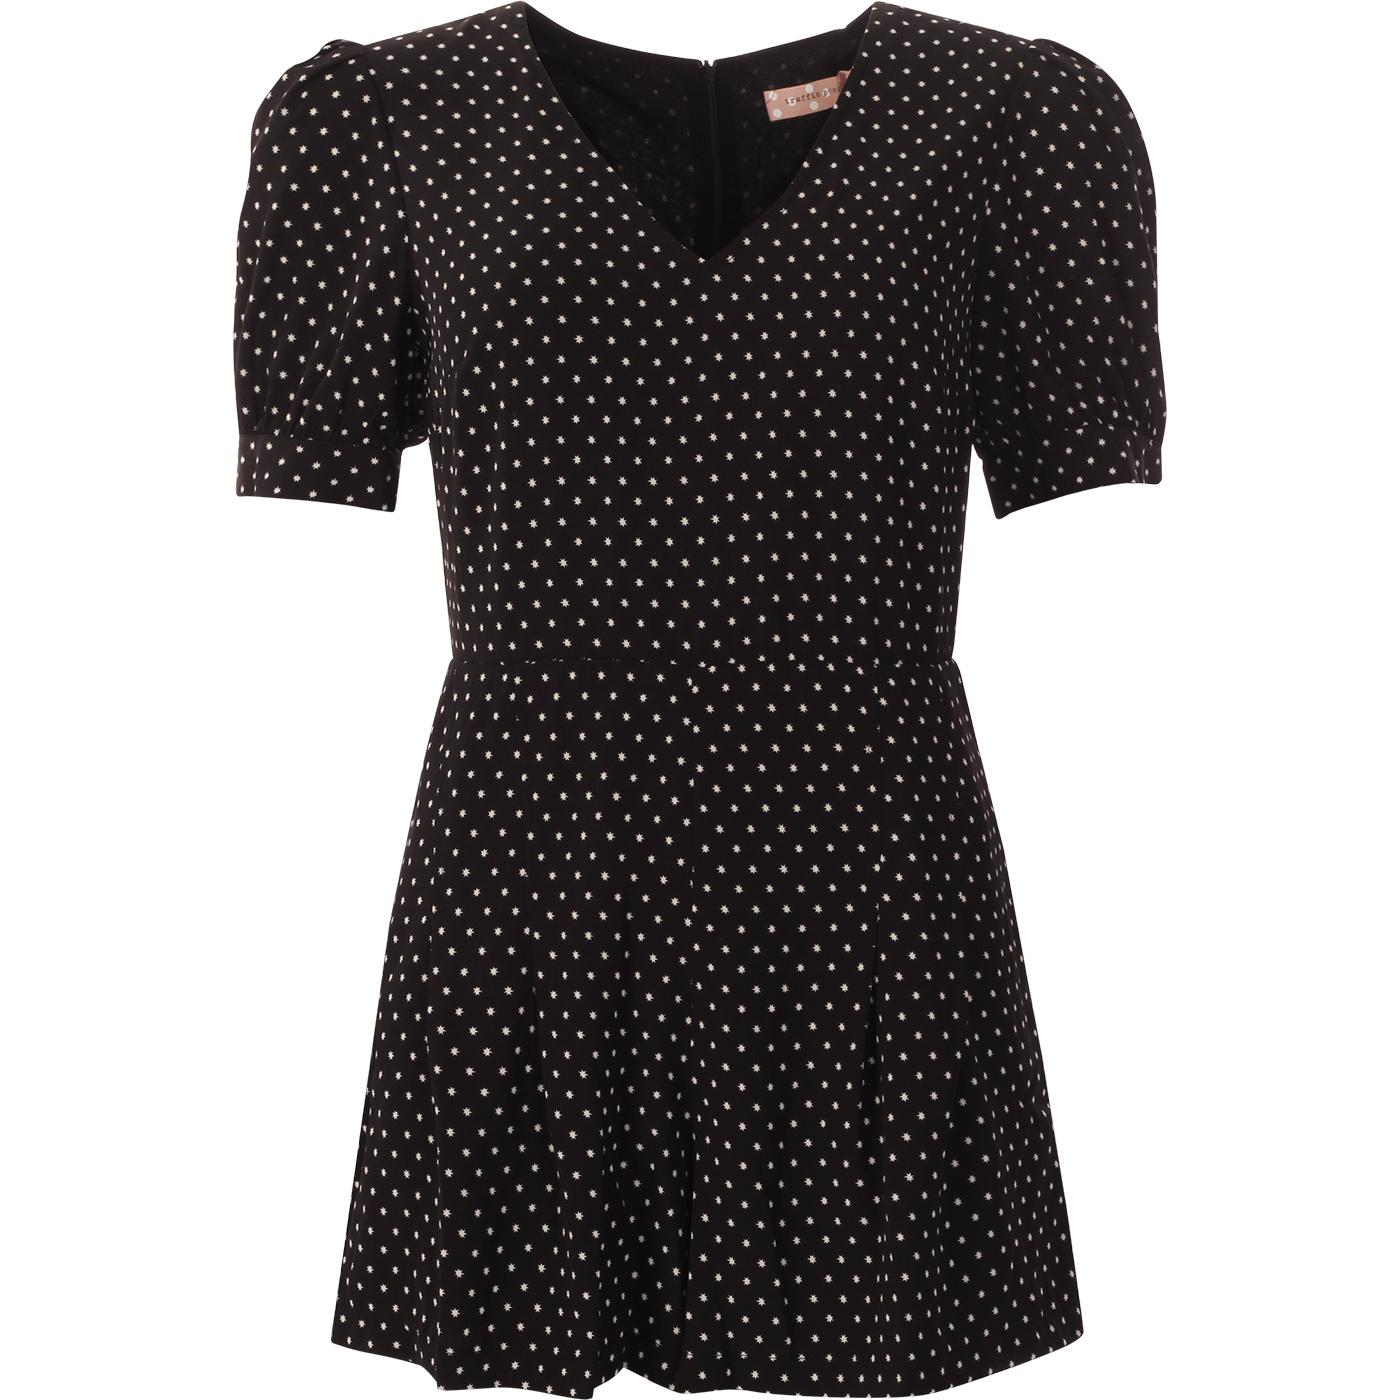 TRAFFIC PEOPLE Retro 60s Star Print Playsuit BLACK